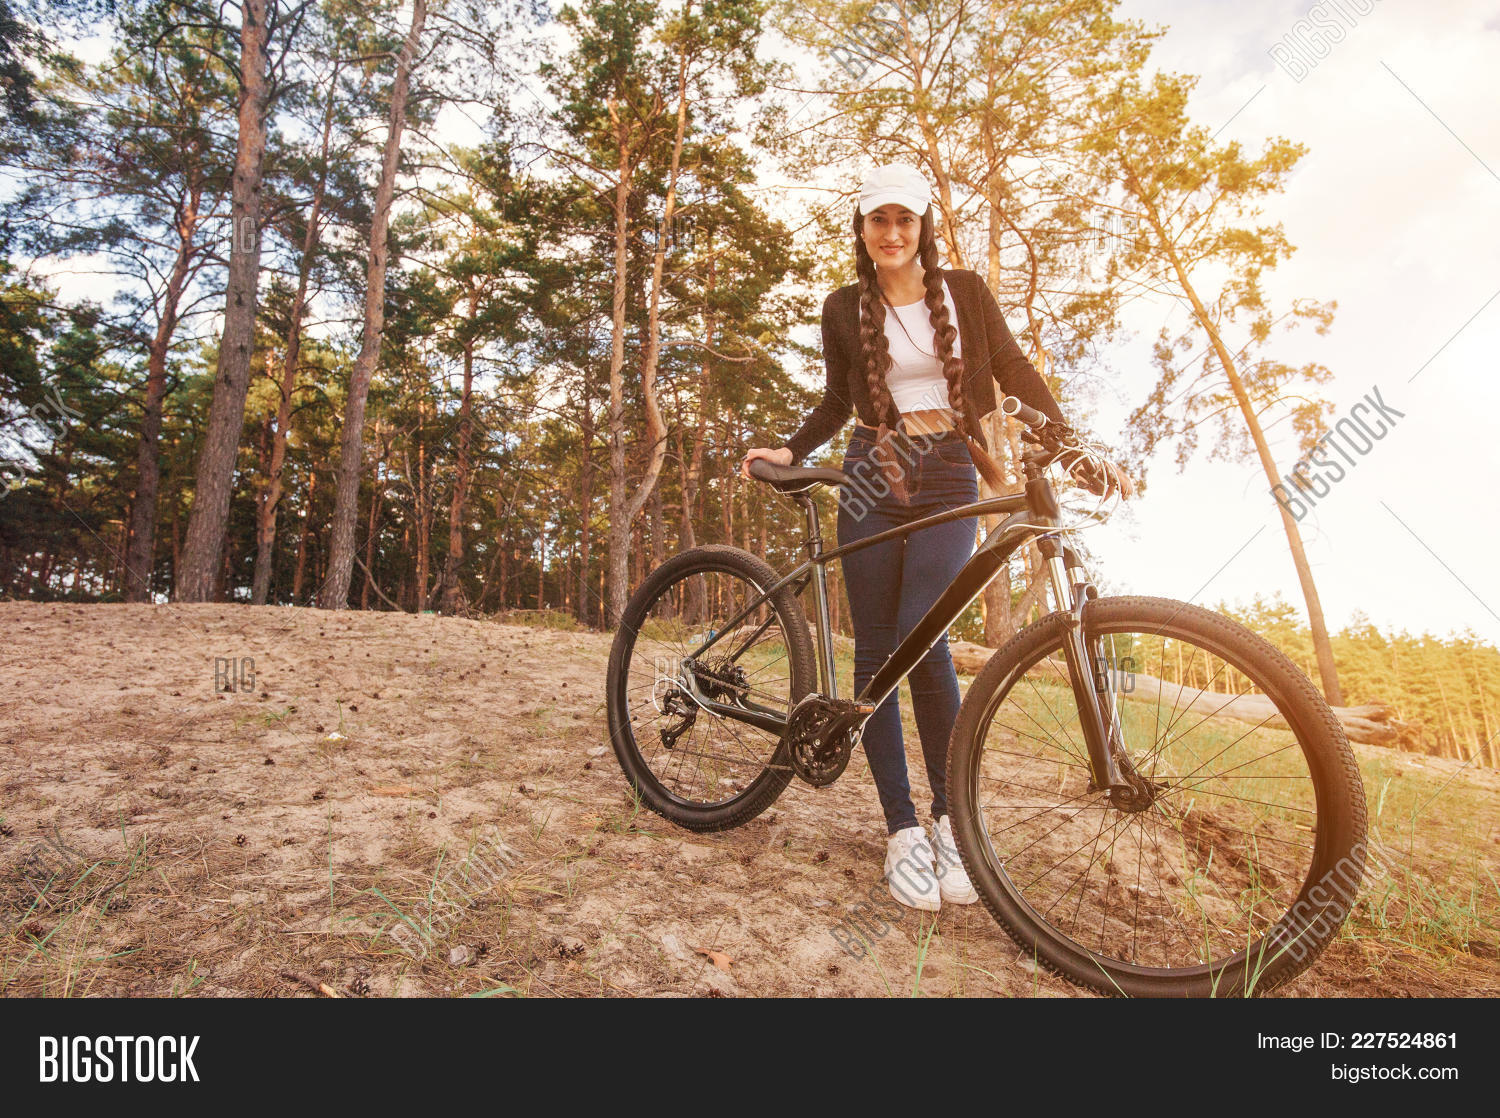 Bicyclist Female On Image Photo Free Trial Bigstock